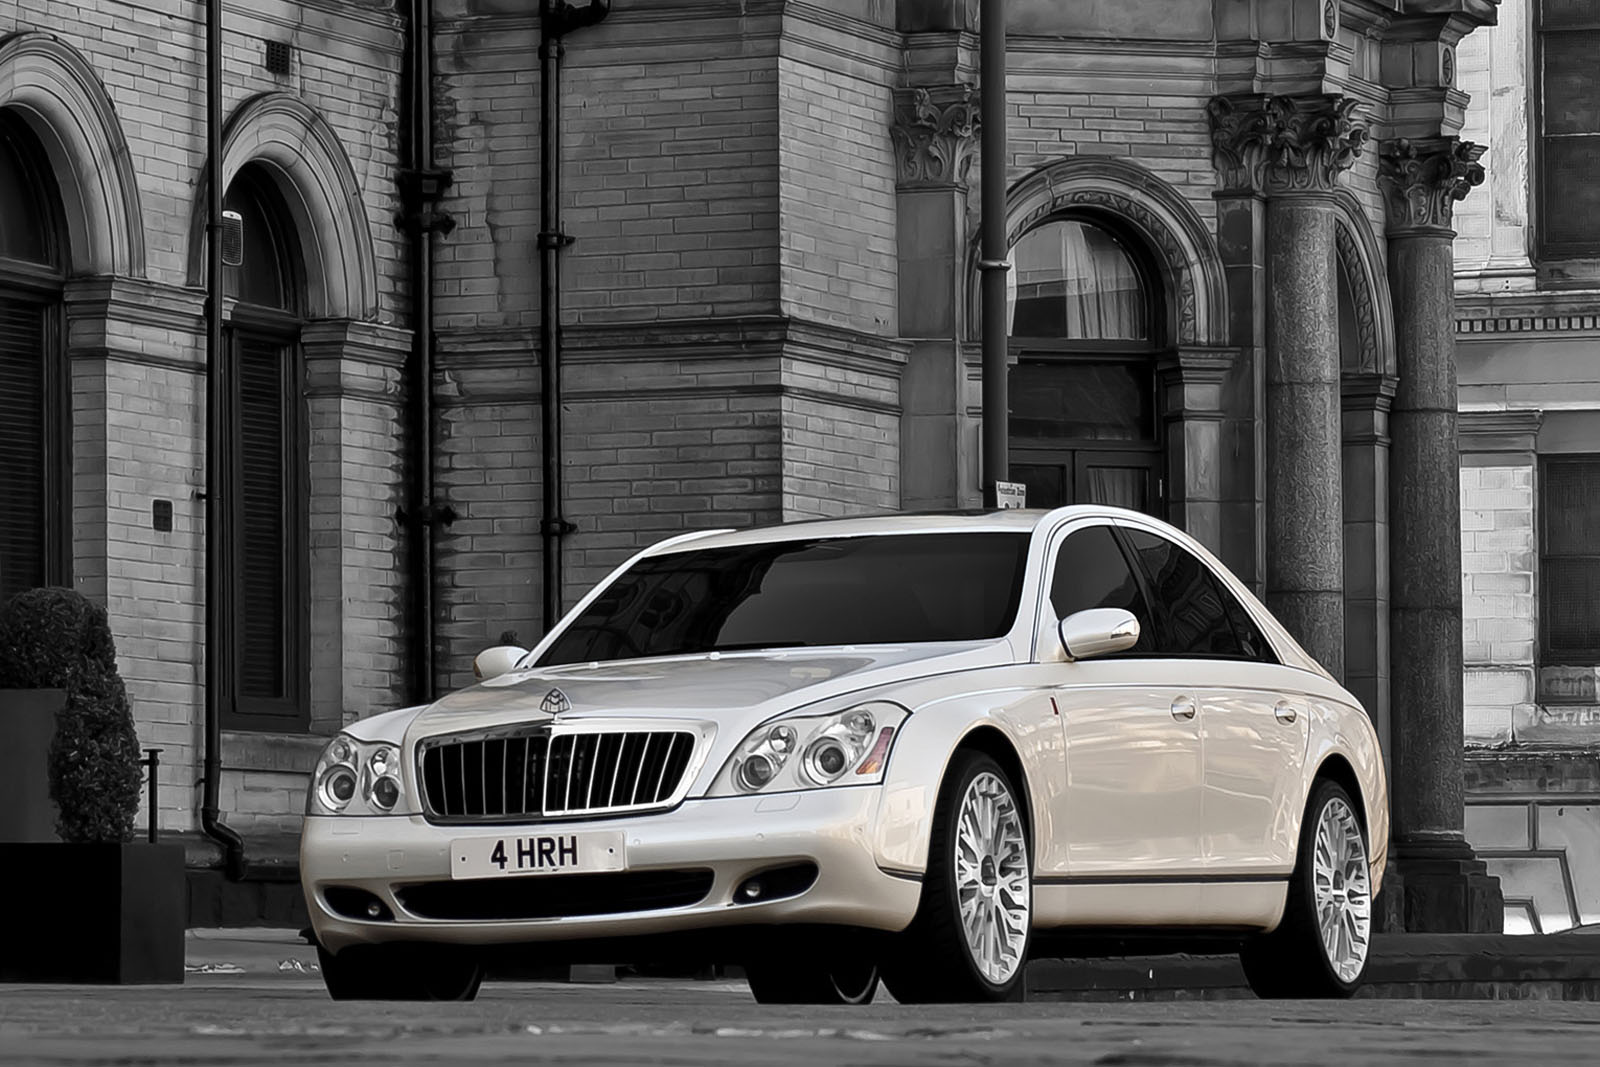 Project Kahn Maybach 57 Project Kahn Maybach 57 Edition with Eco Friendly Drive Train